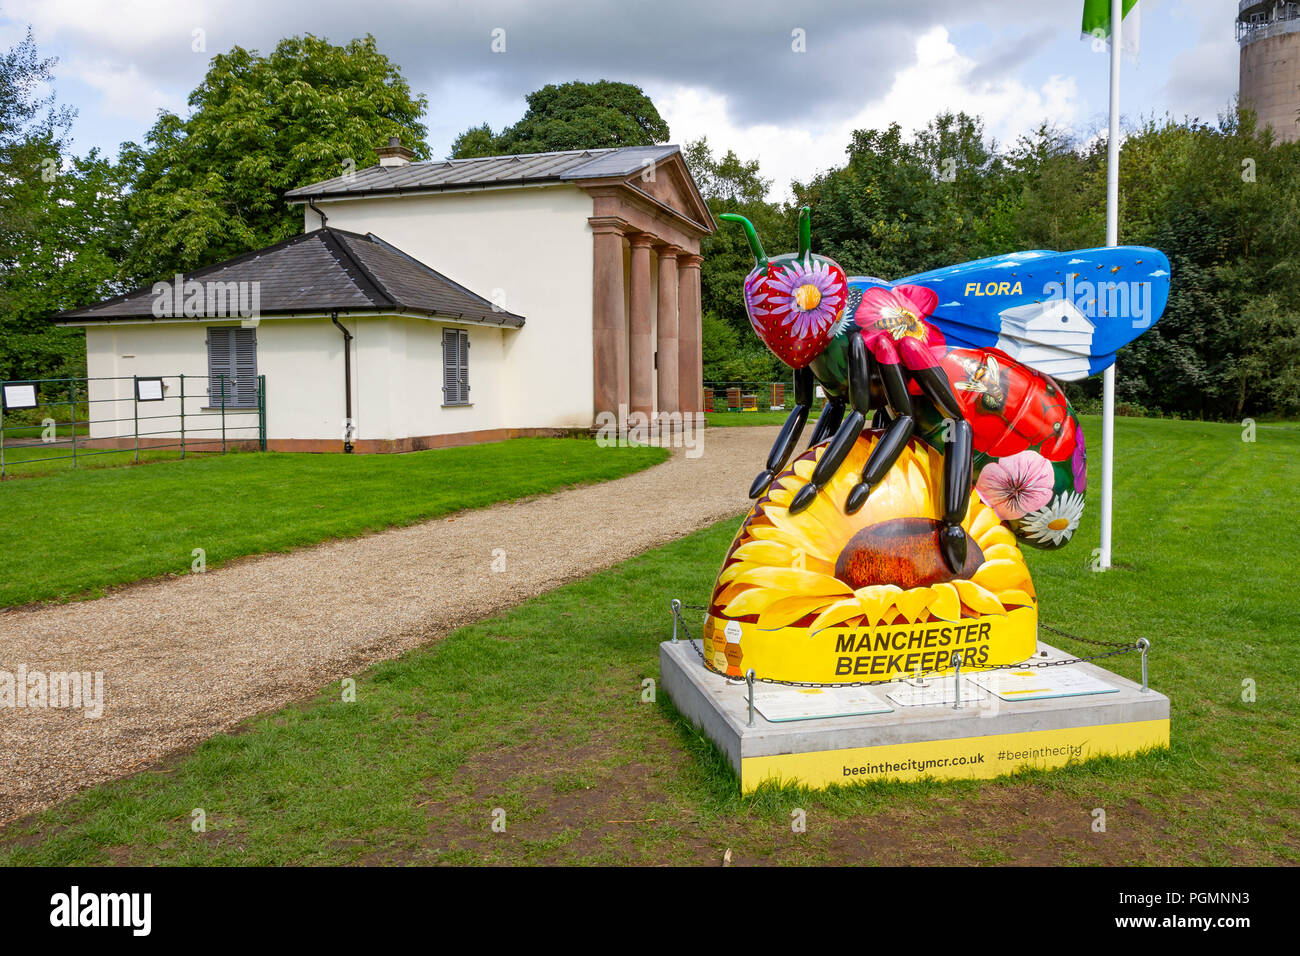 Flora - Peter Davis. Bee in the City, public art event in the City of Manchester. Over 100 bees on a free family fun trail - Stock Image